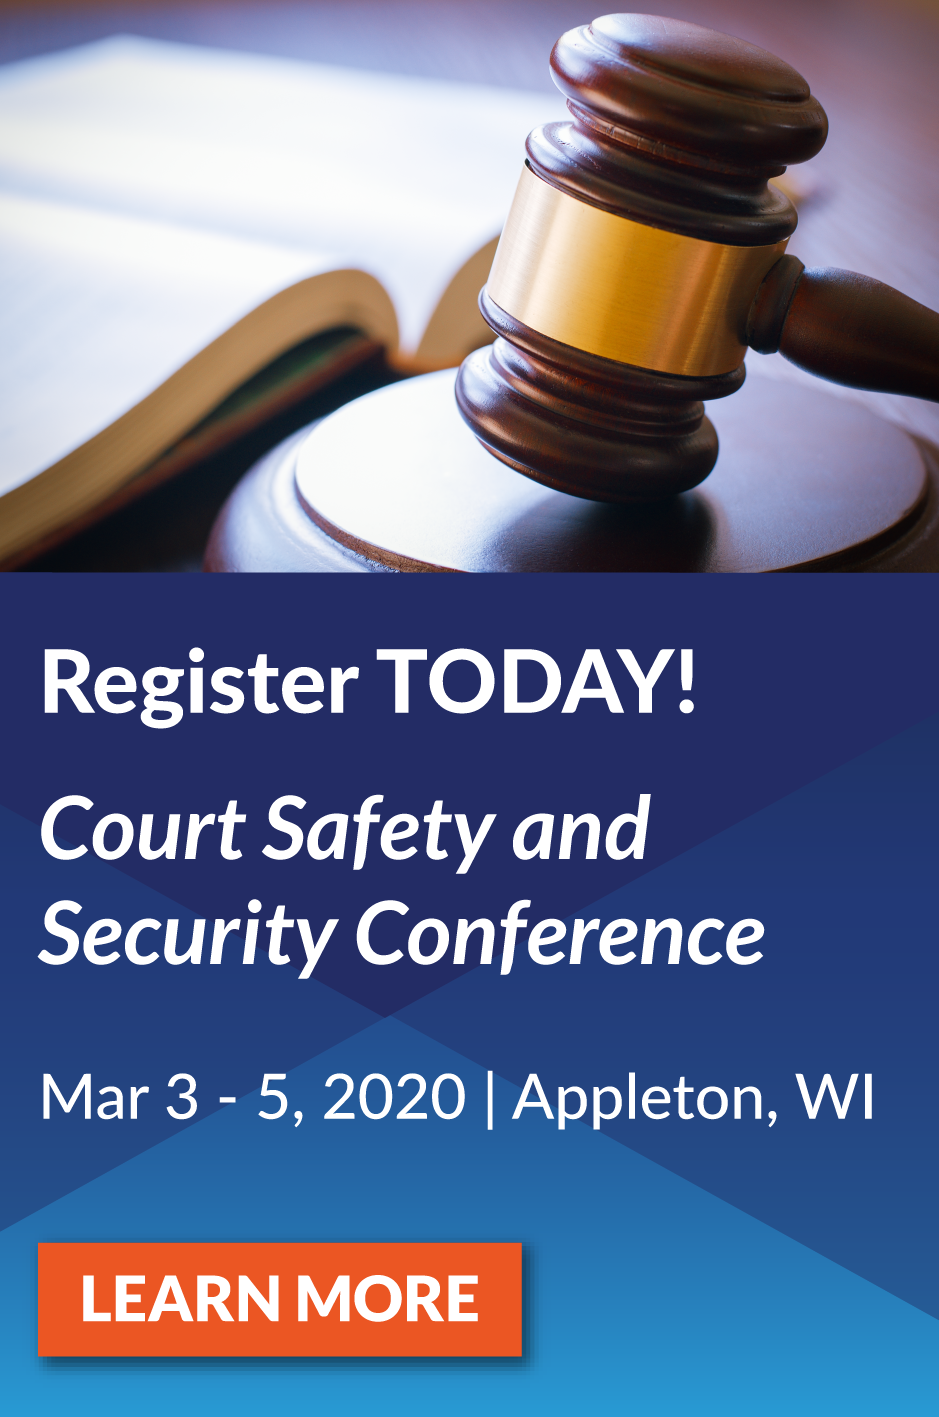 Court Safety and Security Conference